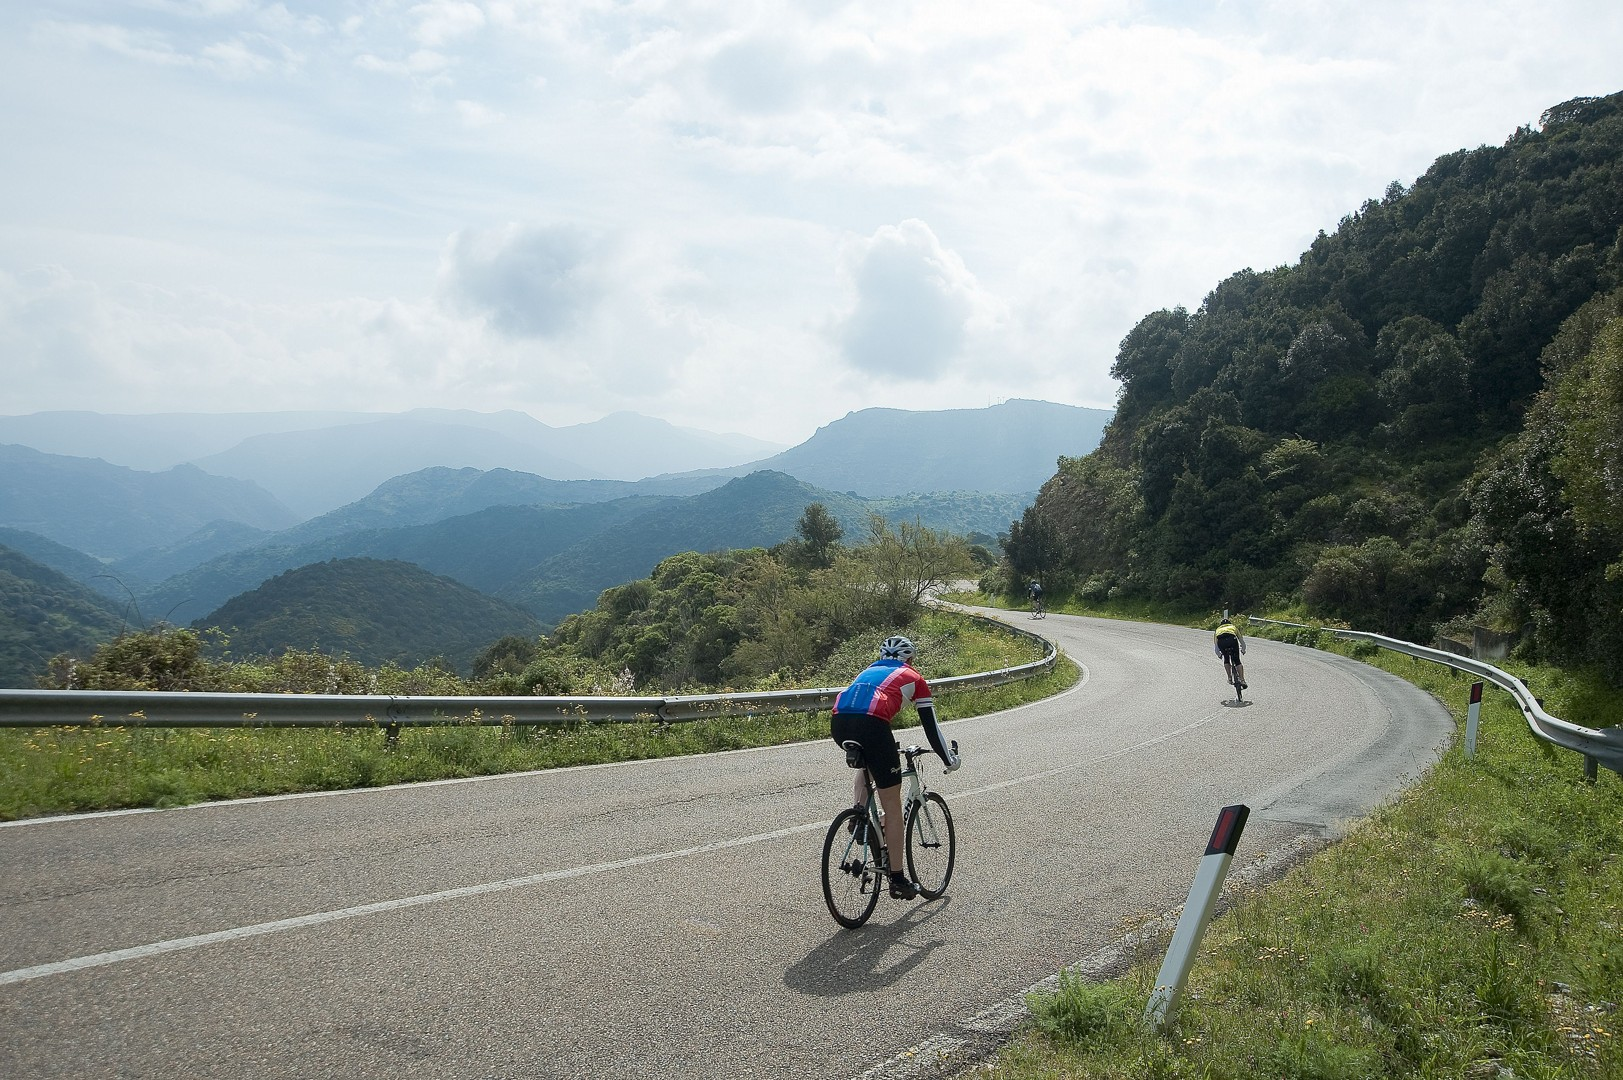 SP2105.jpg - Italy - Sardinia - Mountain Explorer - Guided Road Cycling Holiday - Road Cycling